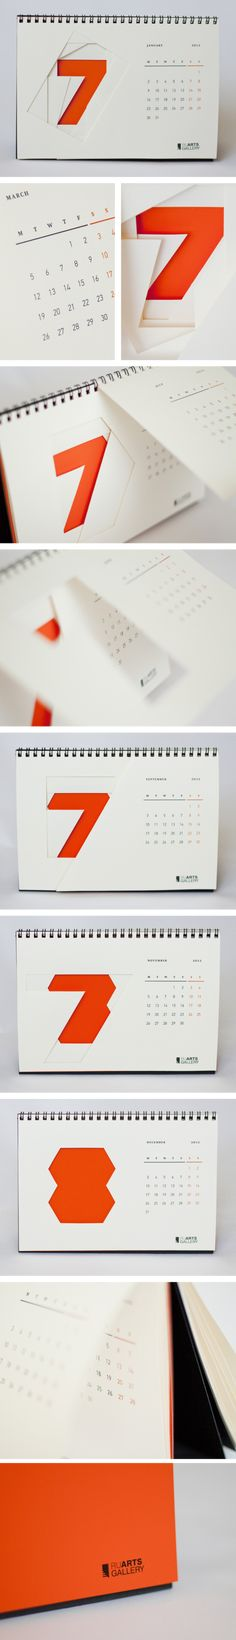 RuArts gallery calendar by Marina Dobraya, via Behance